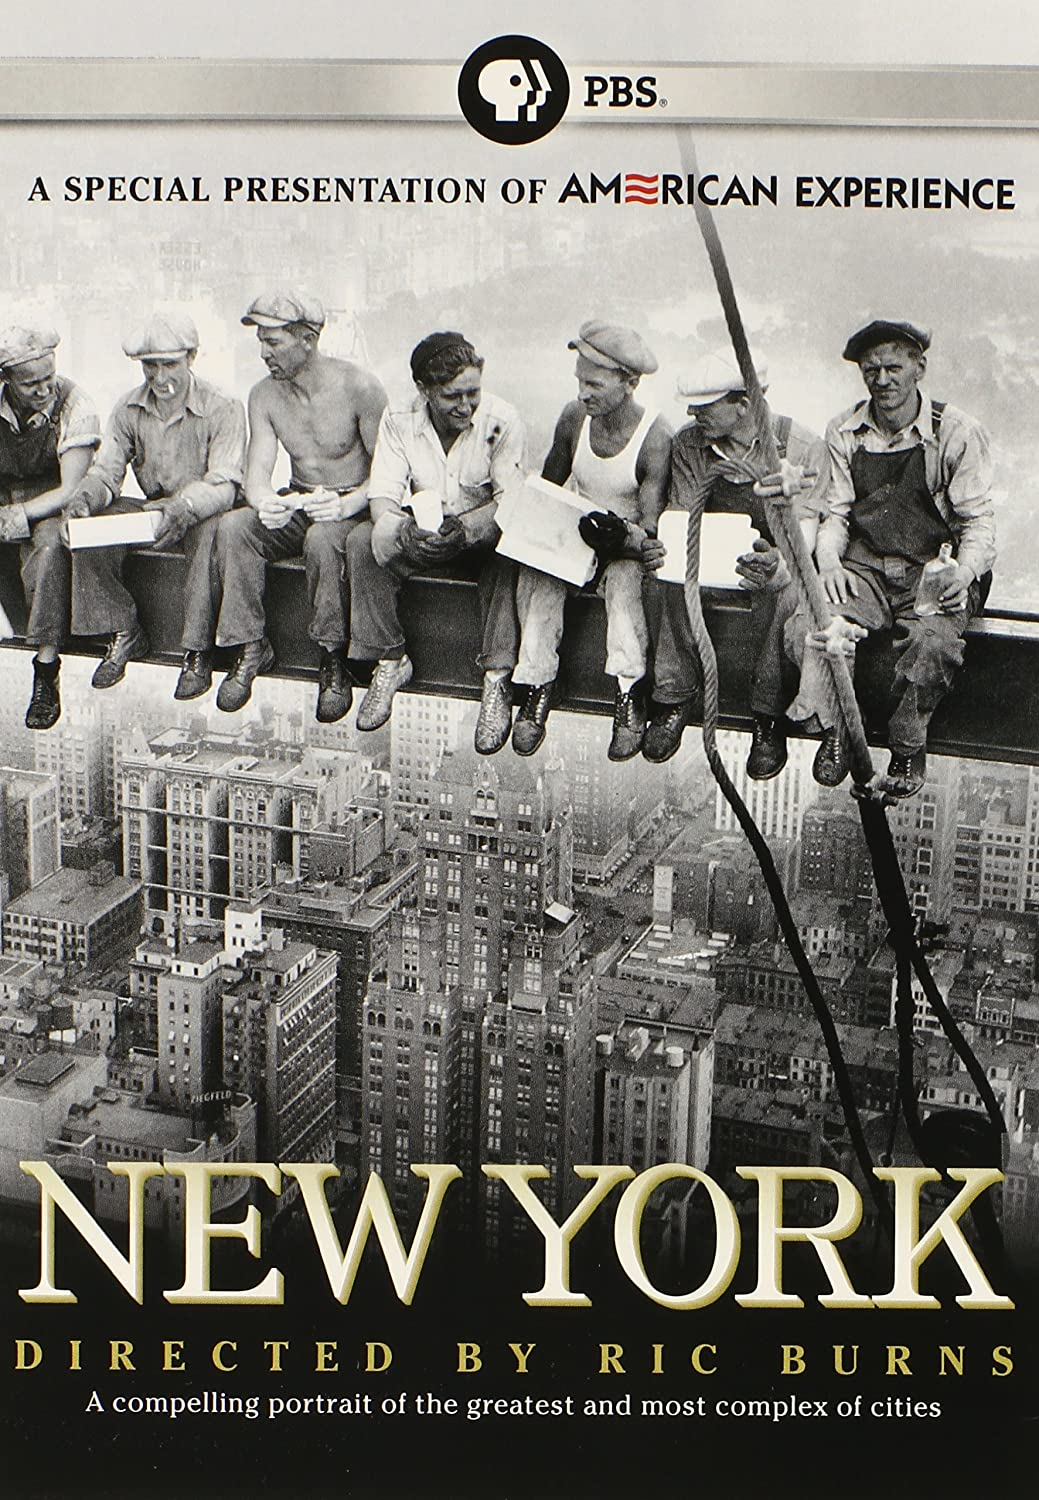 Amazon.com: American Experience: New York: A Documentary Film by Ric Burns: .: Movies & TV